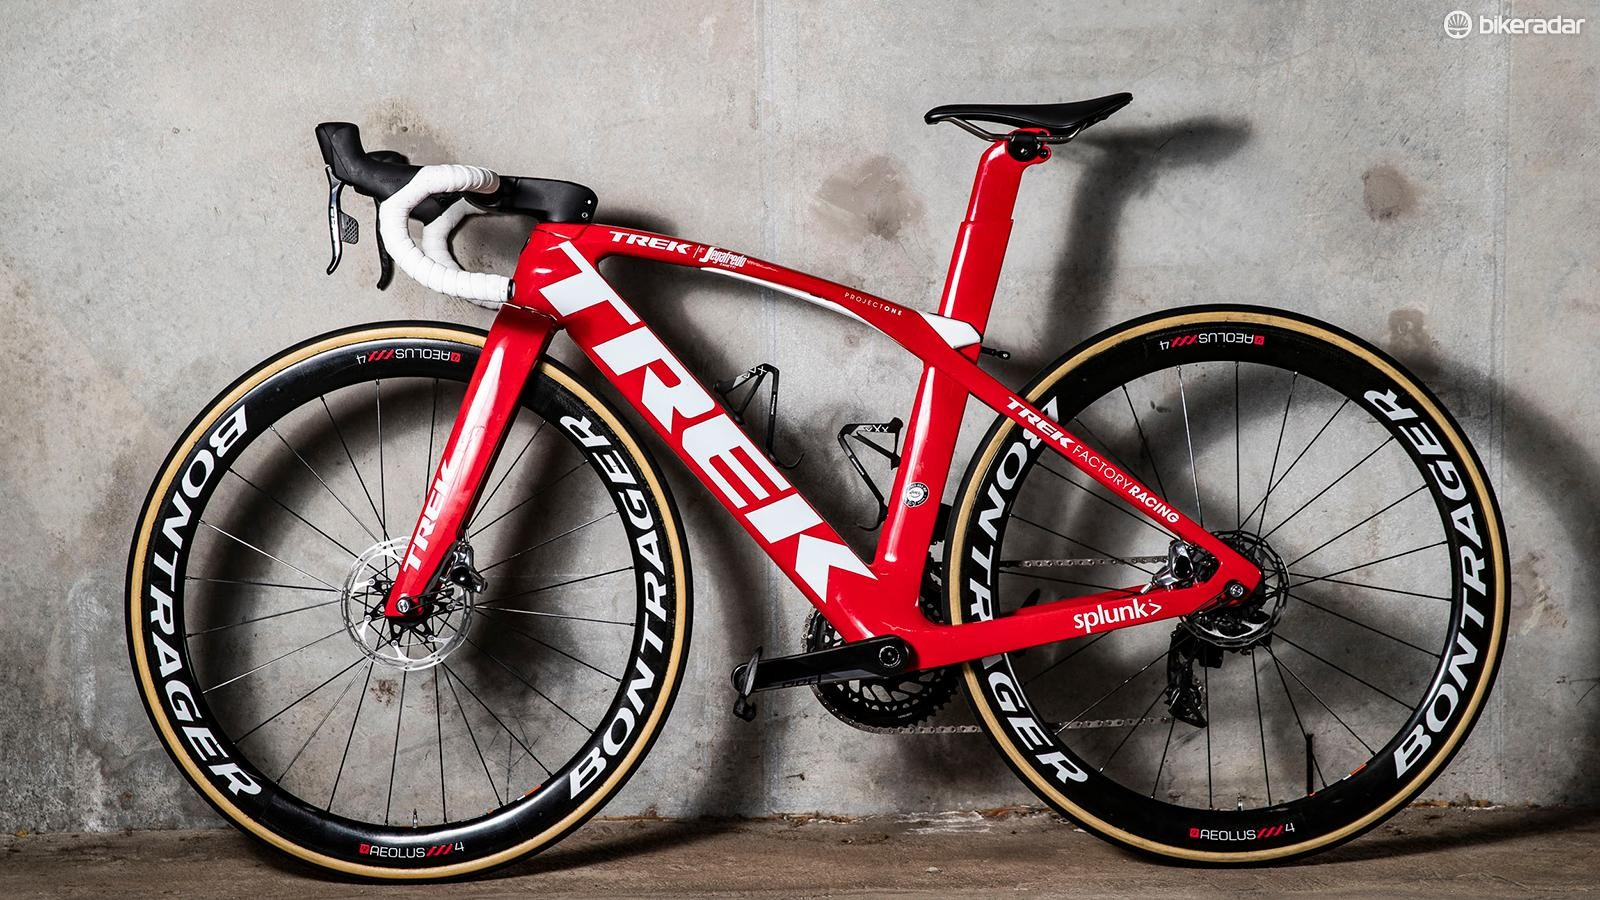 A look at the non-driveside of Richie Porte's Trek Madone